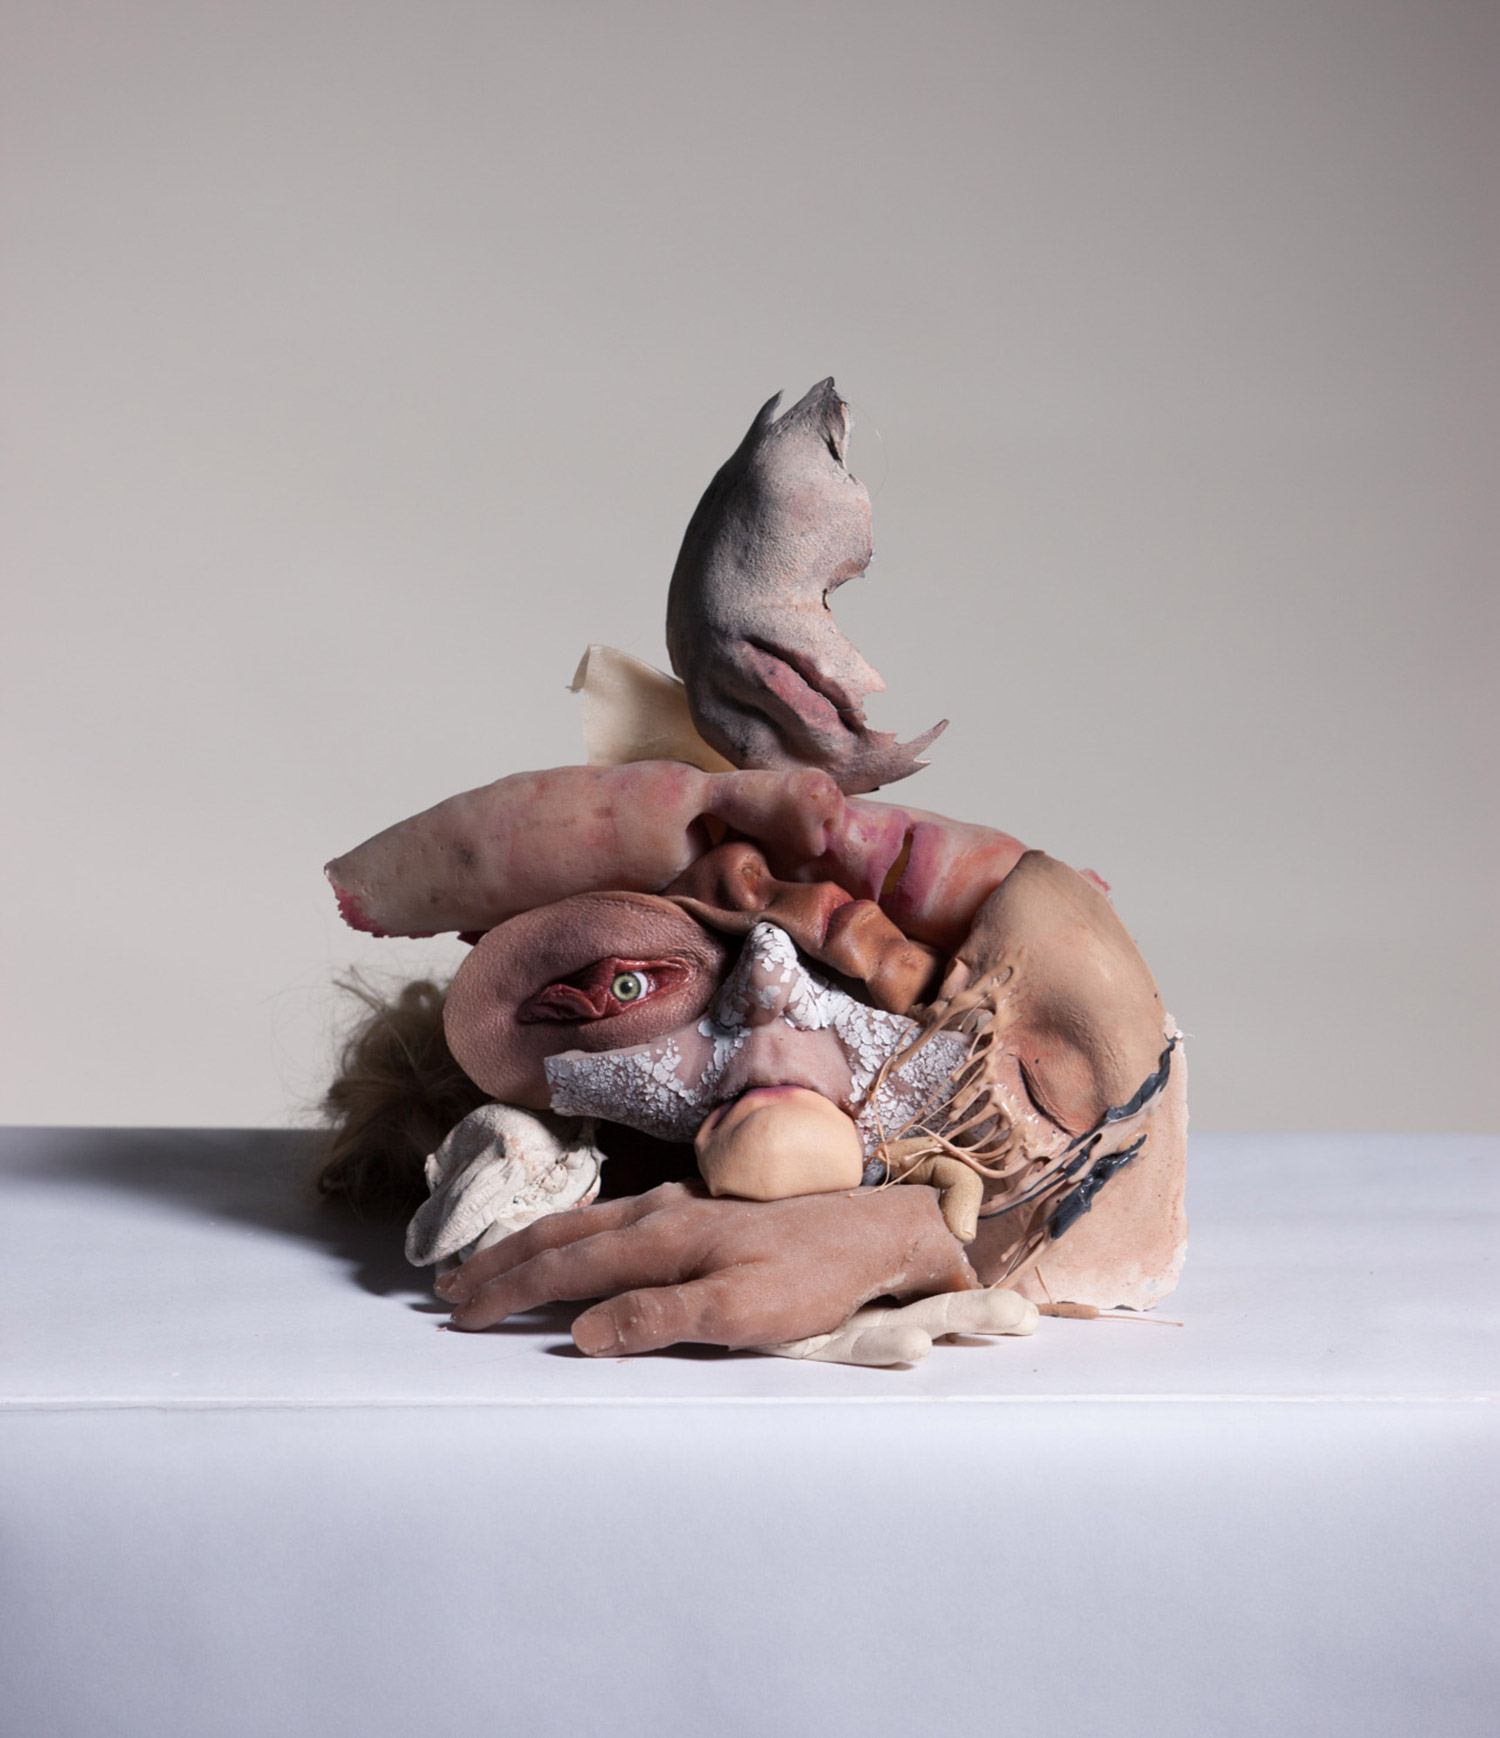 Sarah Sitkin, passive collaboration for Work Magazine, pile of human body parts